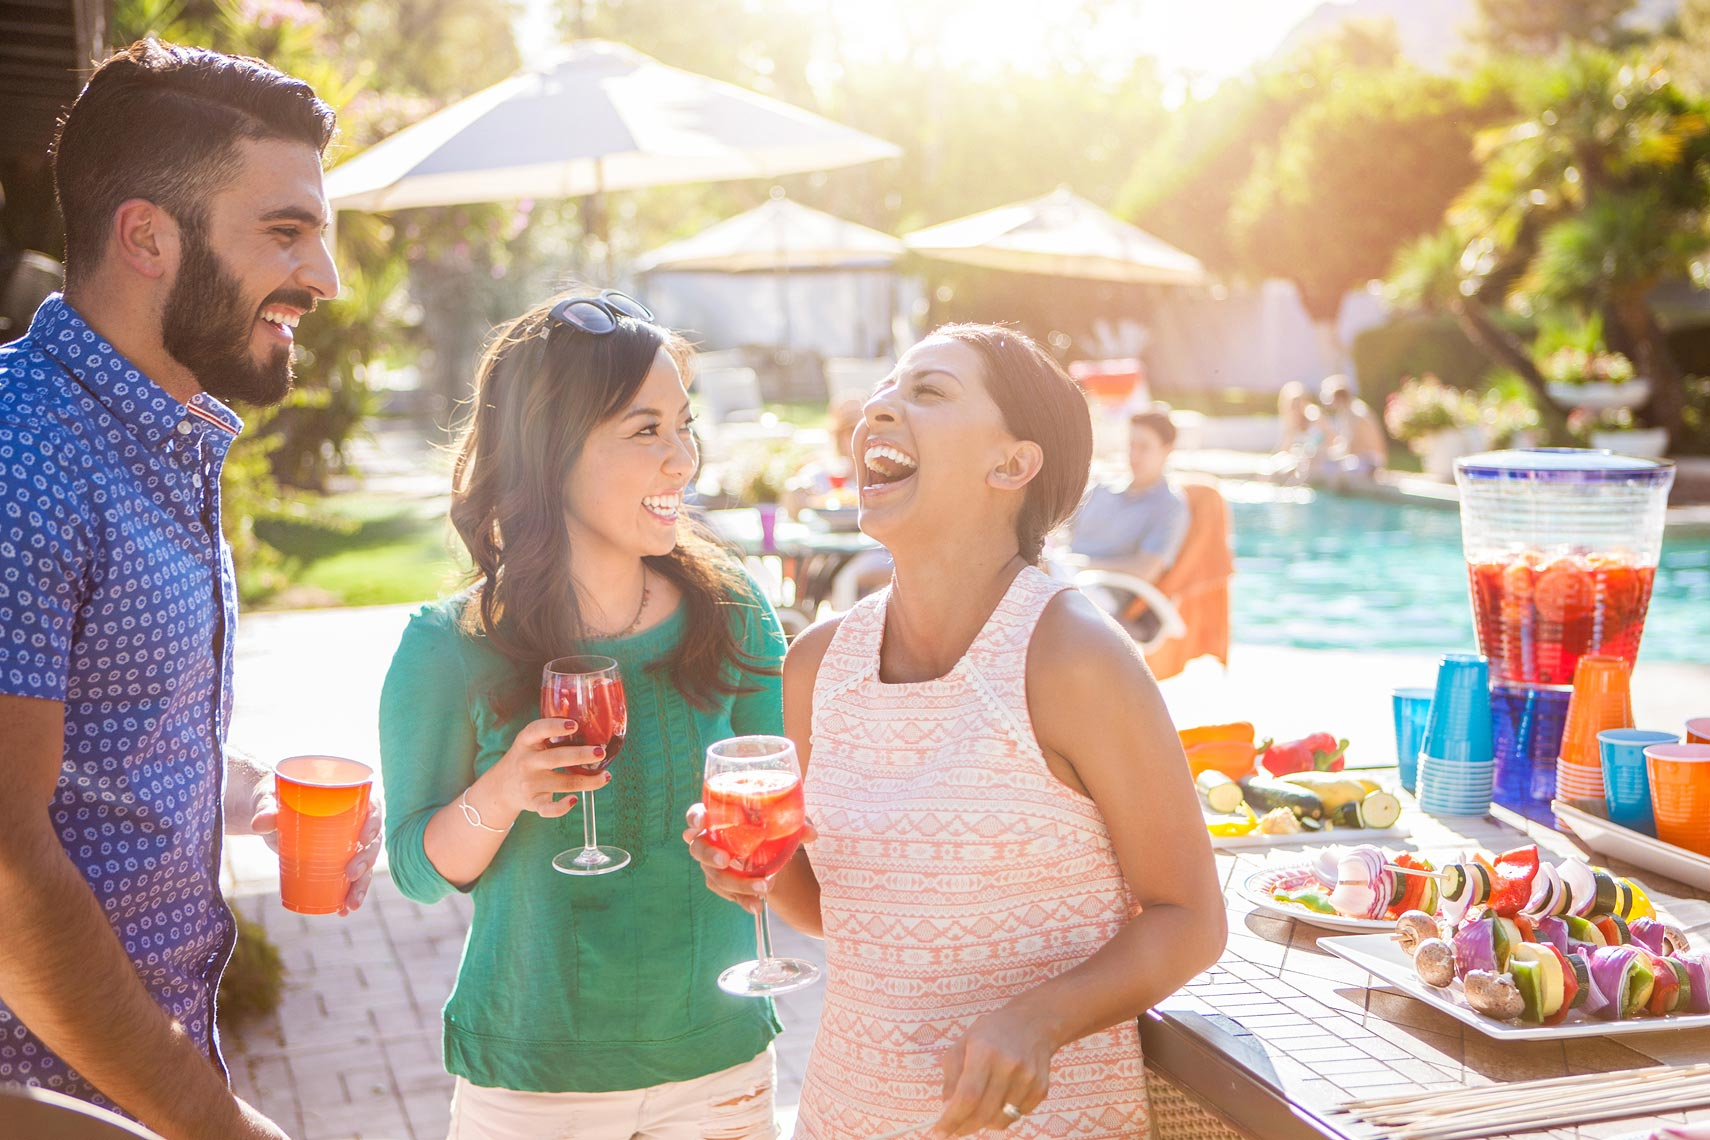 Friends laughing at a backyard pool party | OneAZ | John Fedele Lifestyle Photography